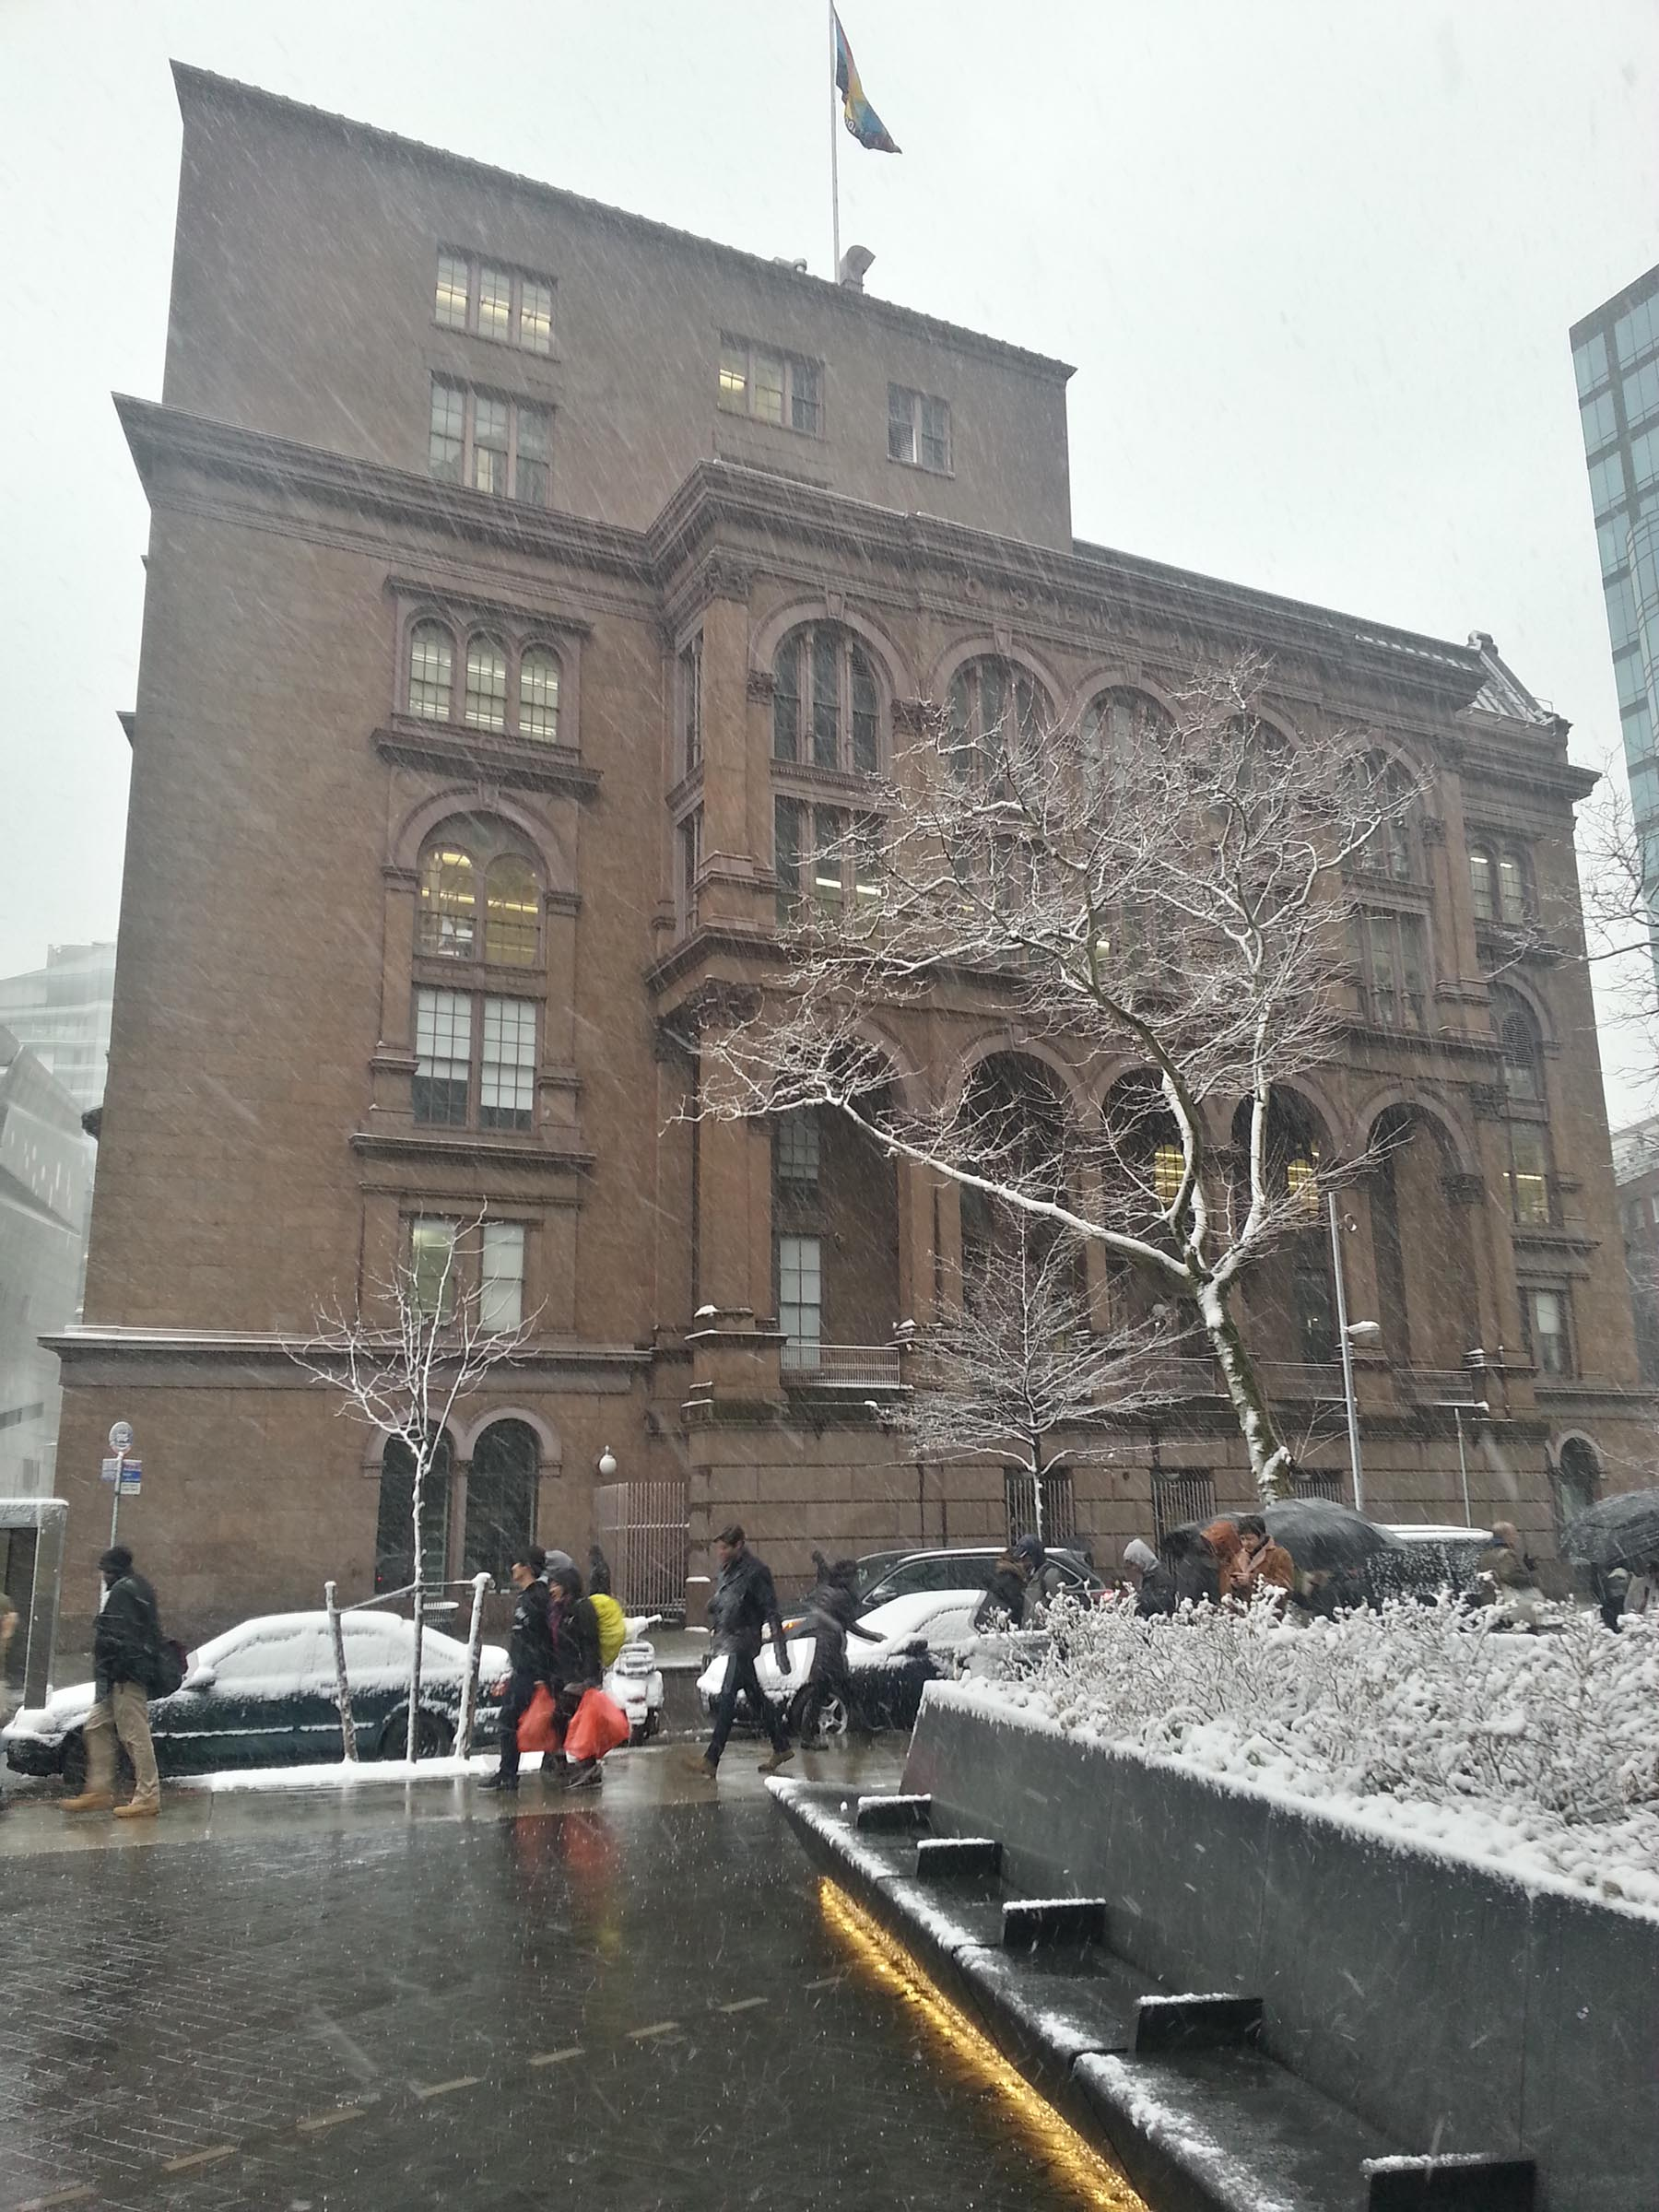 Photograph of the Cooper Union building on a snowy day, taken from across the street. A snow covered tree and hedge are in the foreground in front of it.